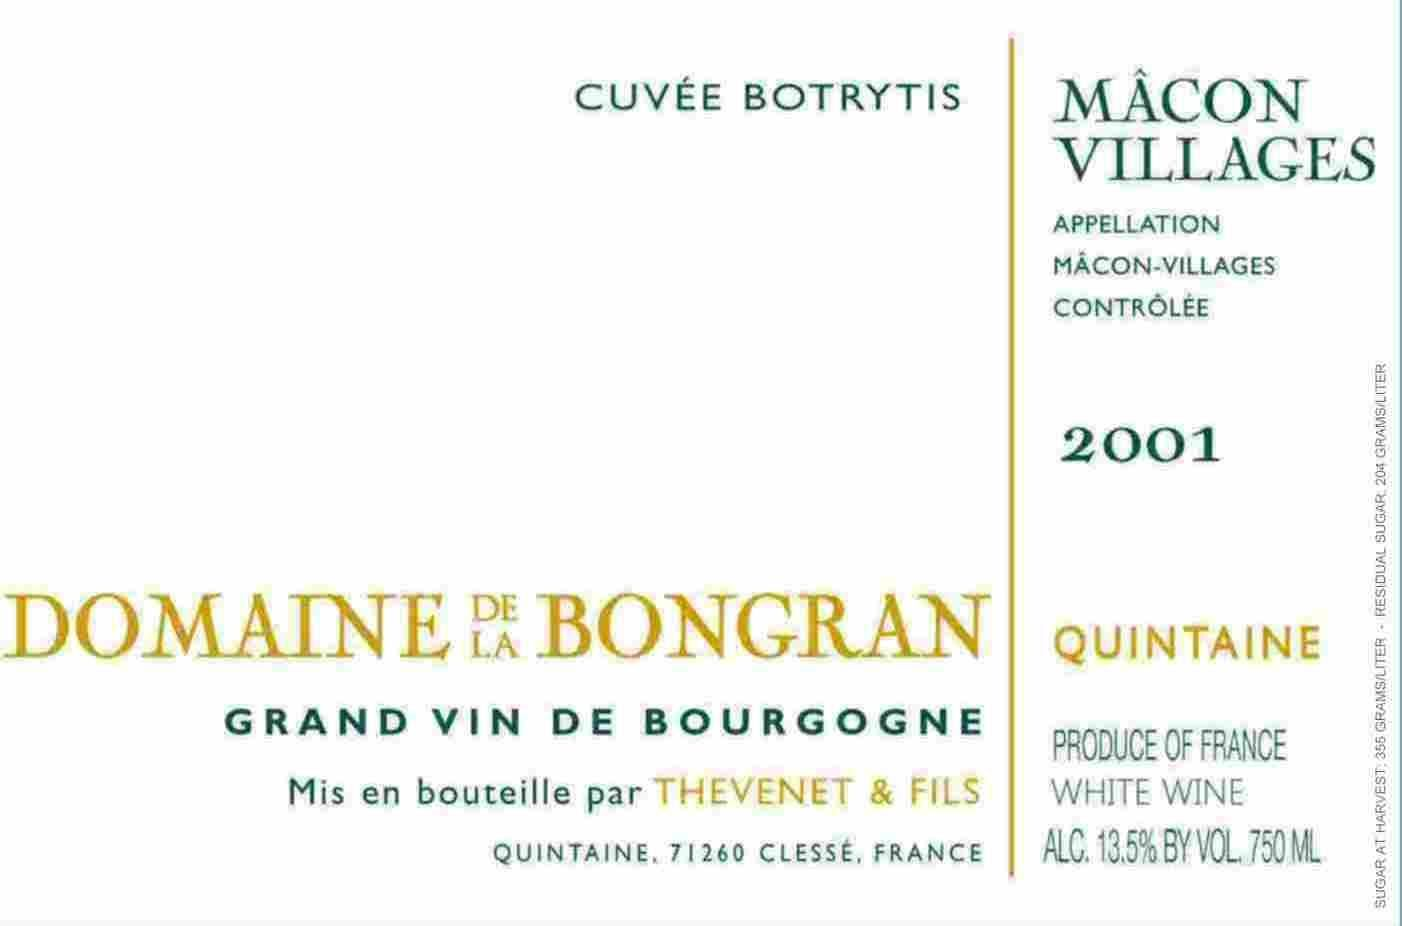 Domaine de la Bongran Macon Villages Cuvee Botrytis 2001 Front Label